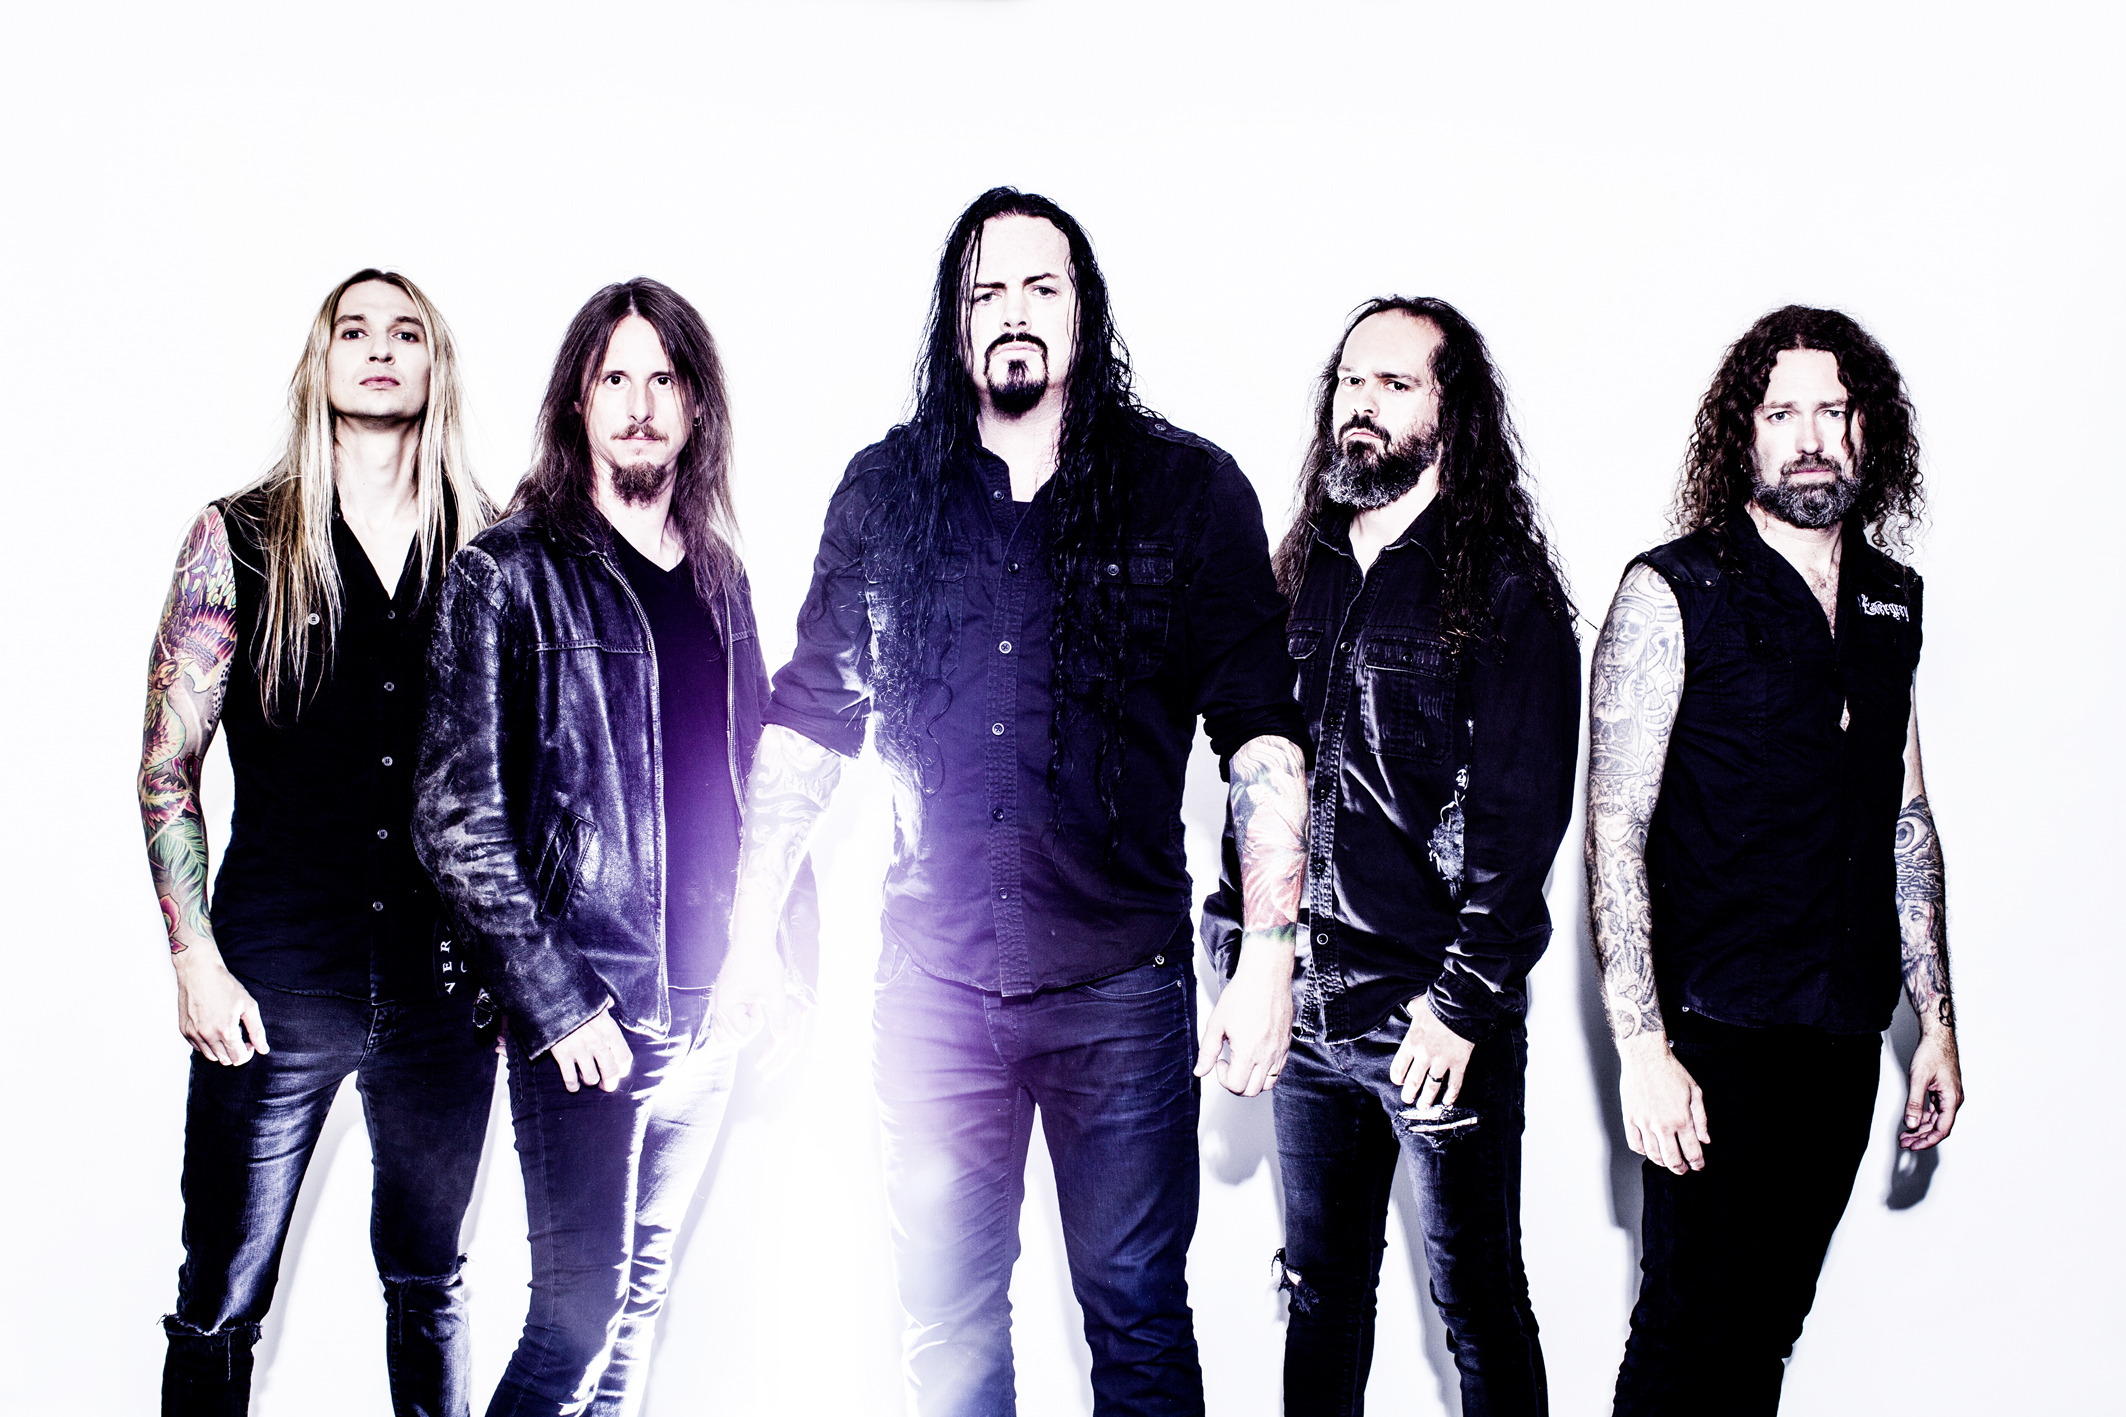 Evergrey Hd Wallpaper